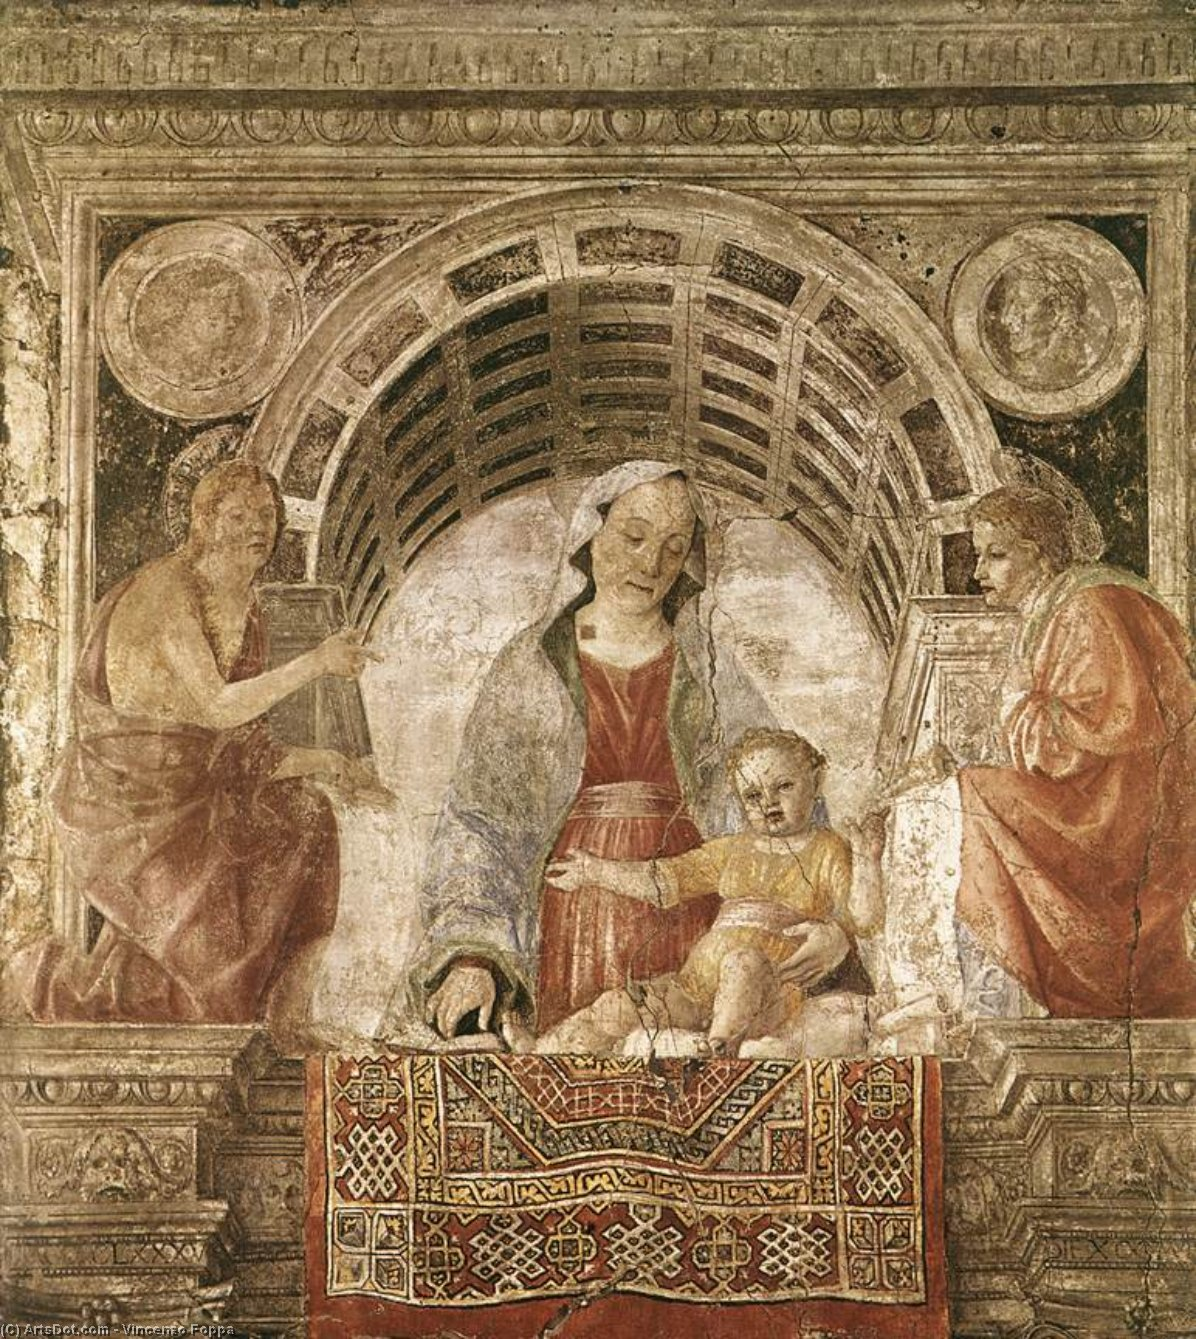 Madonna and Child with St John the Baptist and St John the Evangelist, Frescoes by Vincenzo Foppa  (order Fine Art Print on canvas Vincenzo Foppa)